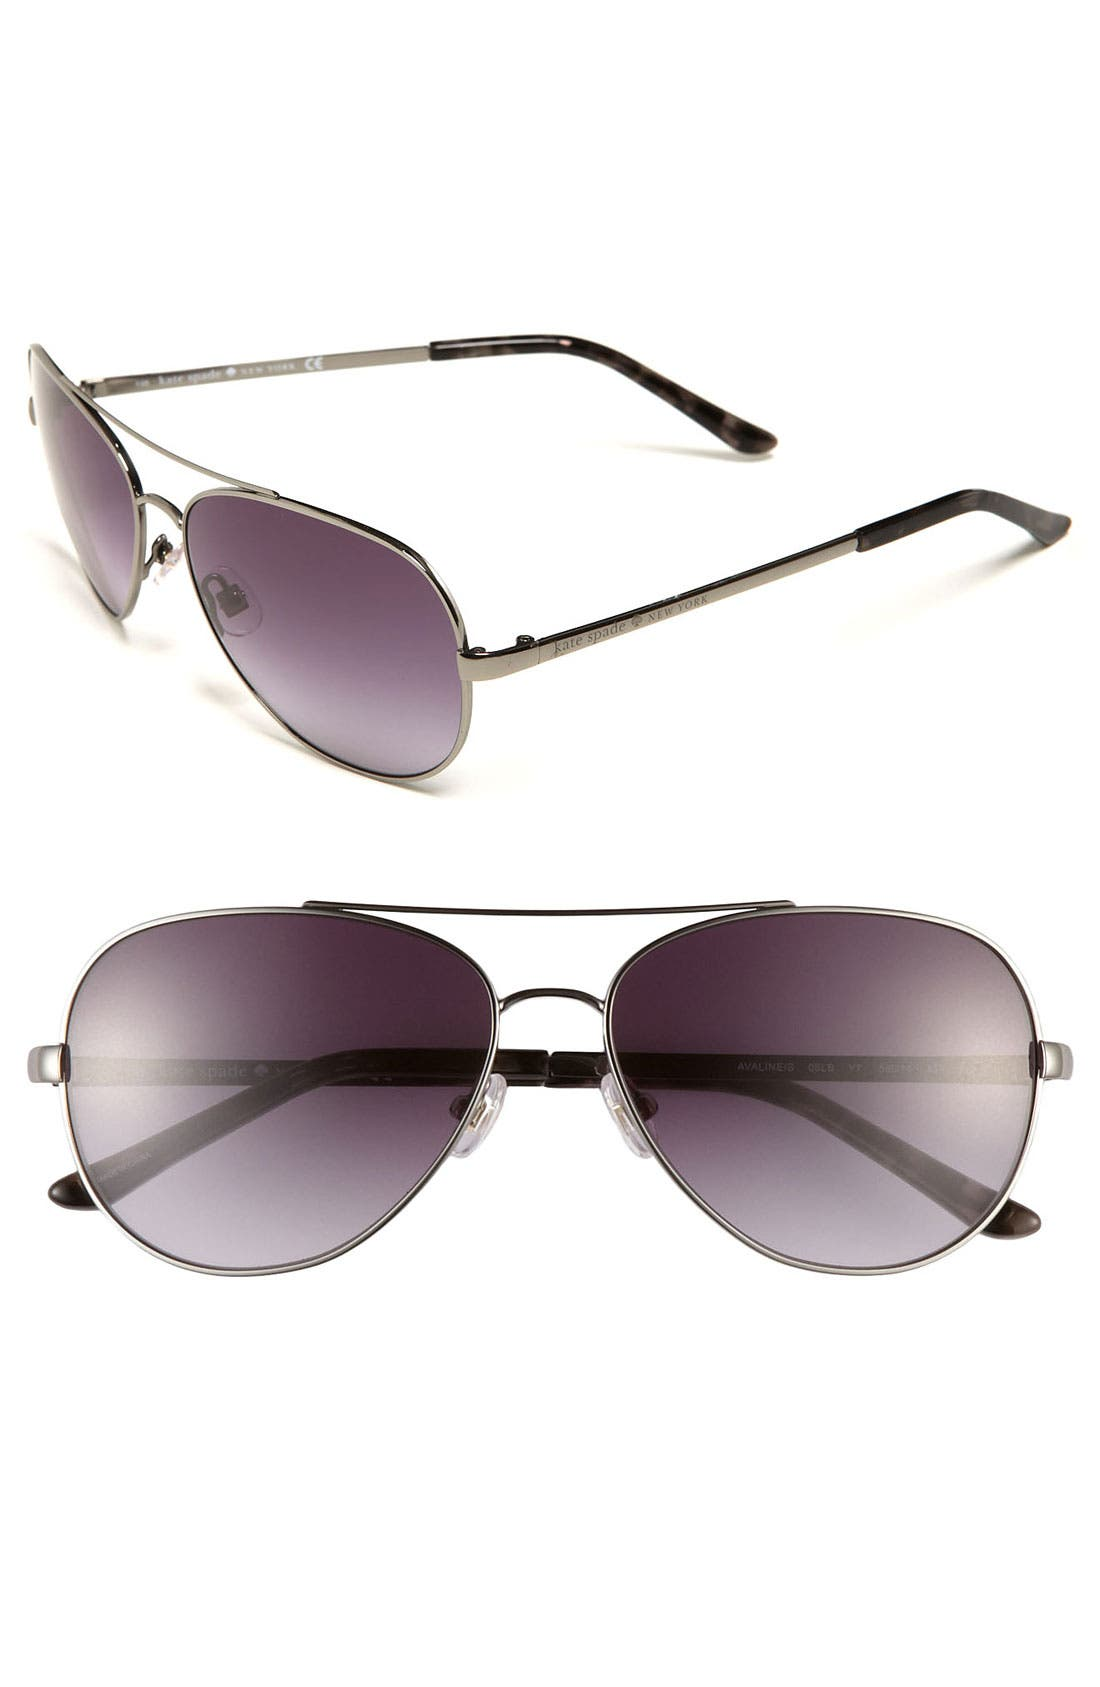 Main Image - kate spade new york 'avaline' 58mm aviator sunglasses